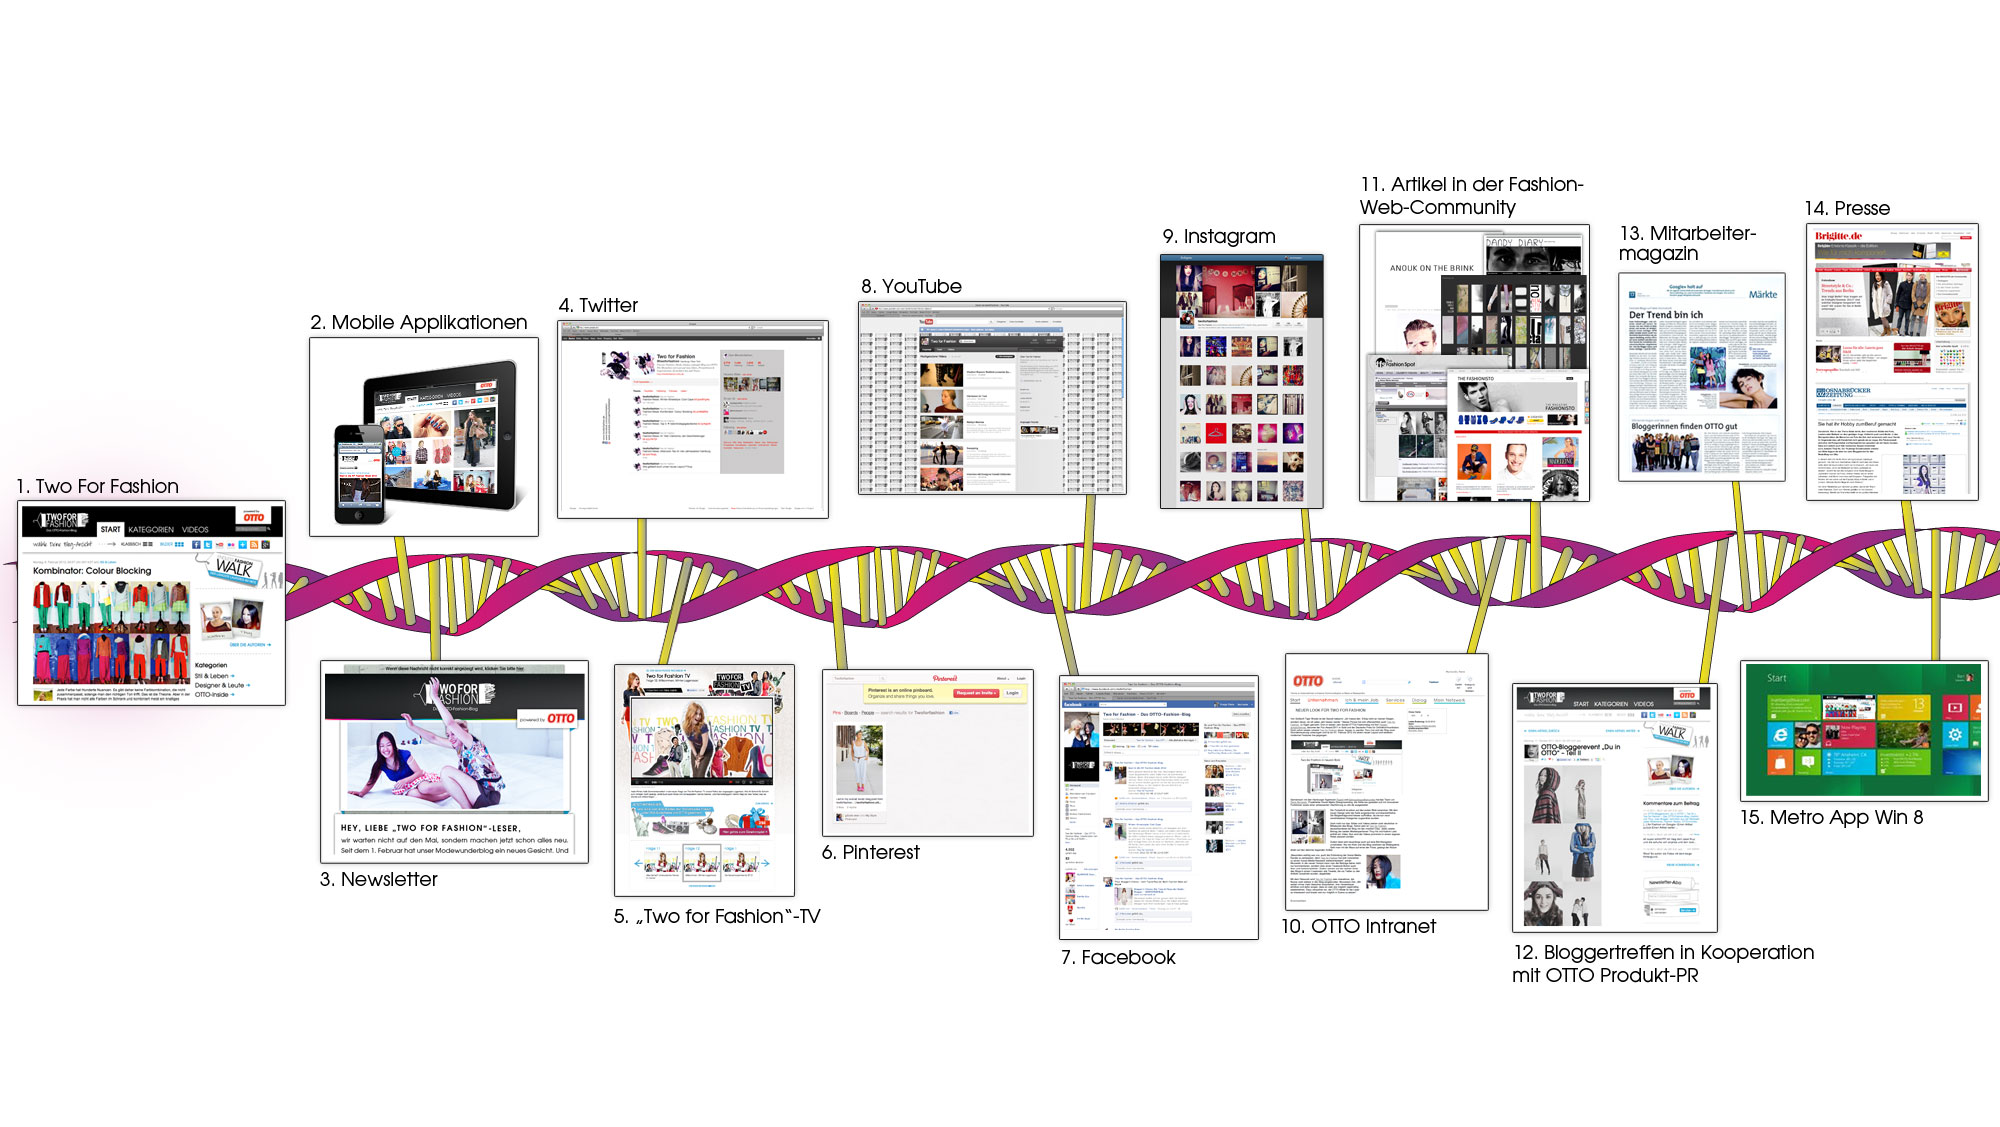 Content DNA Two for Fashion Companions